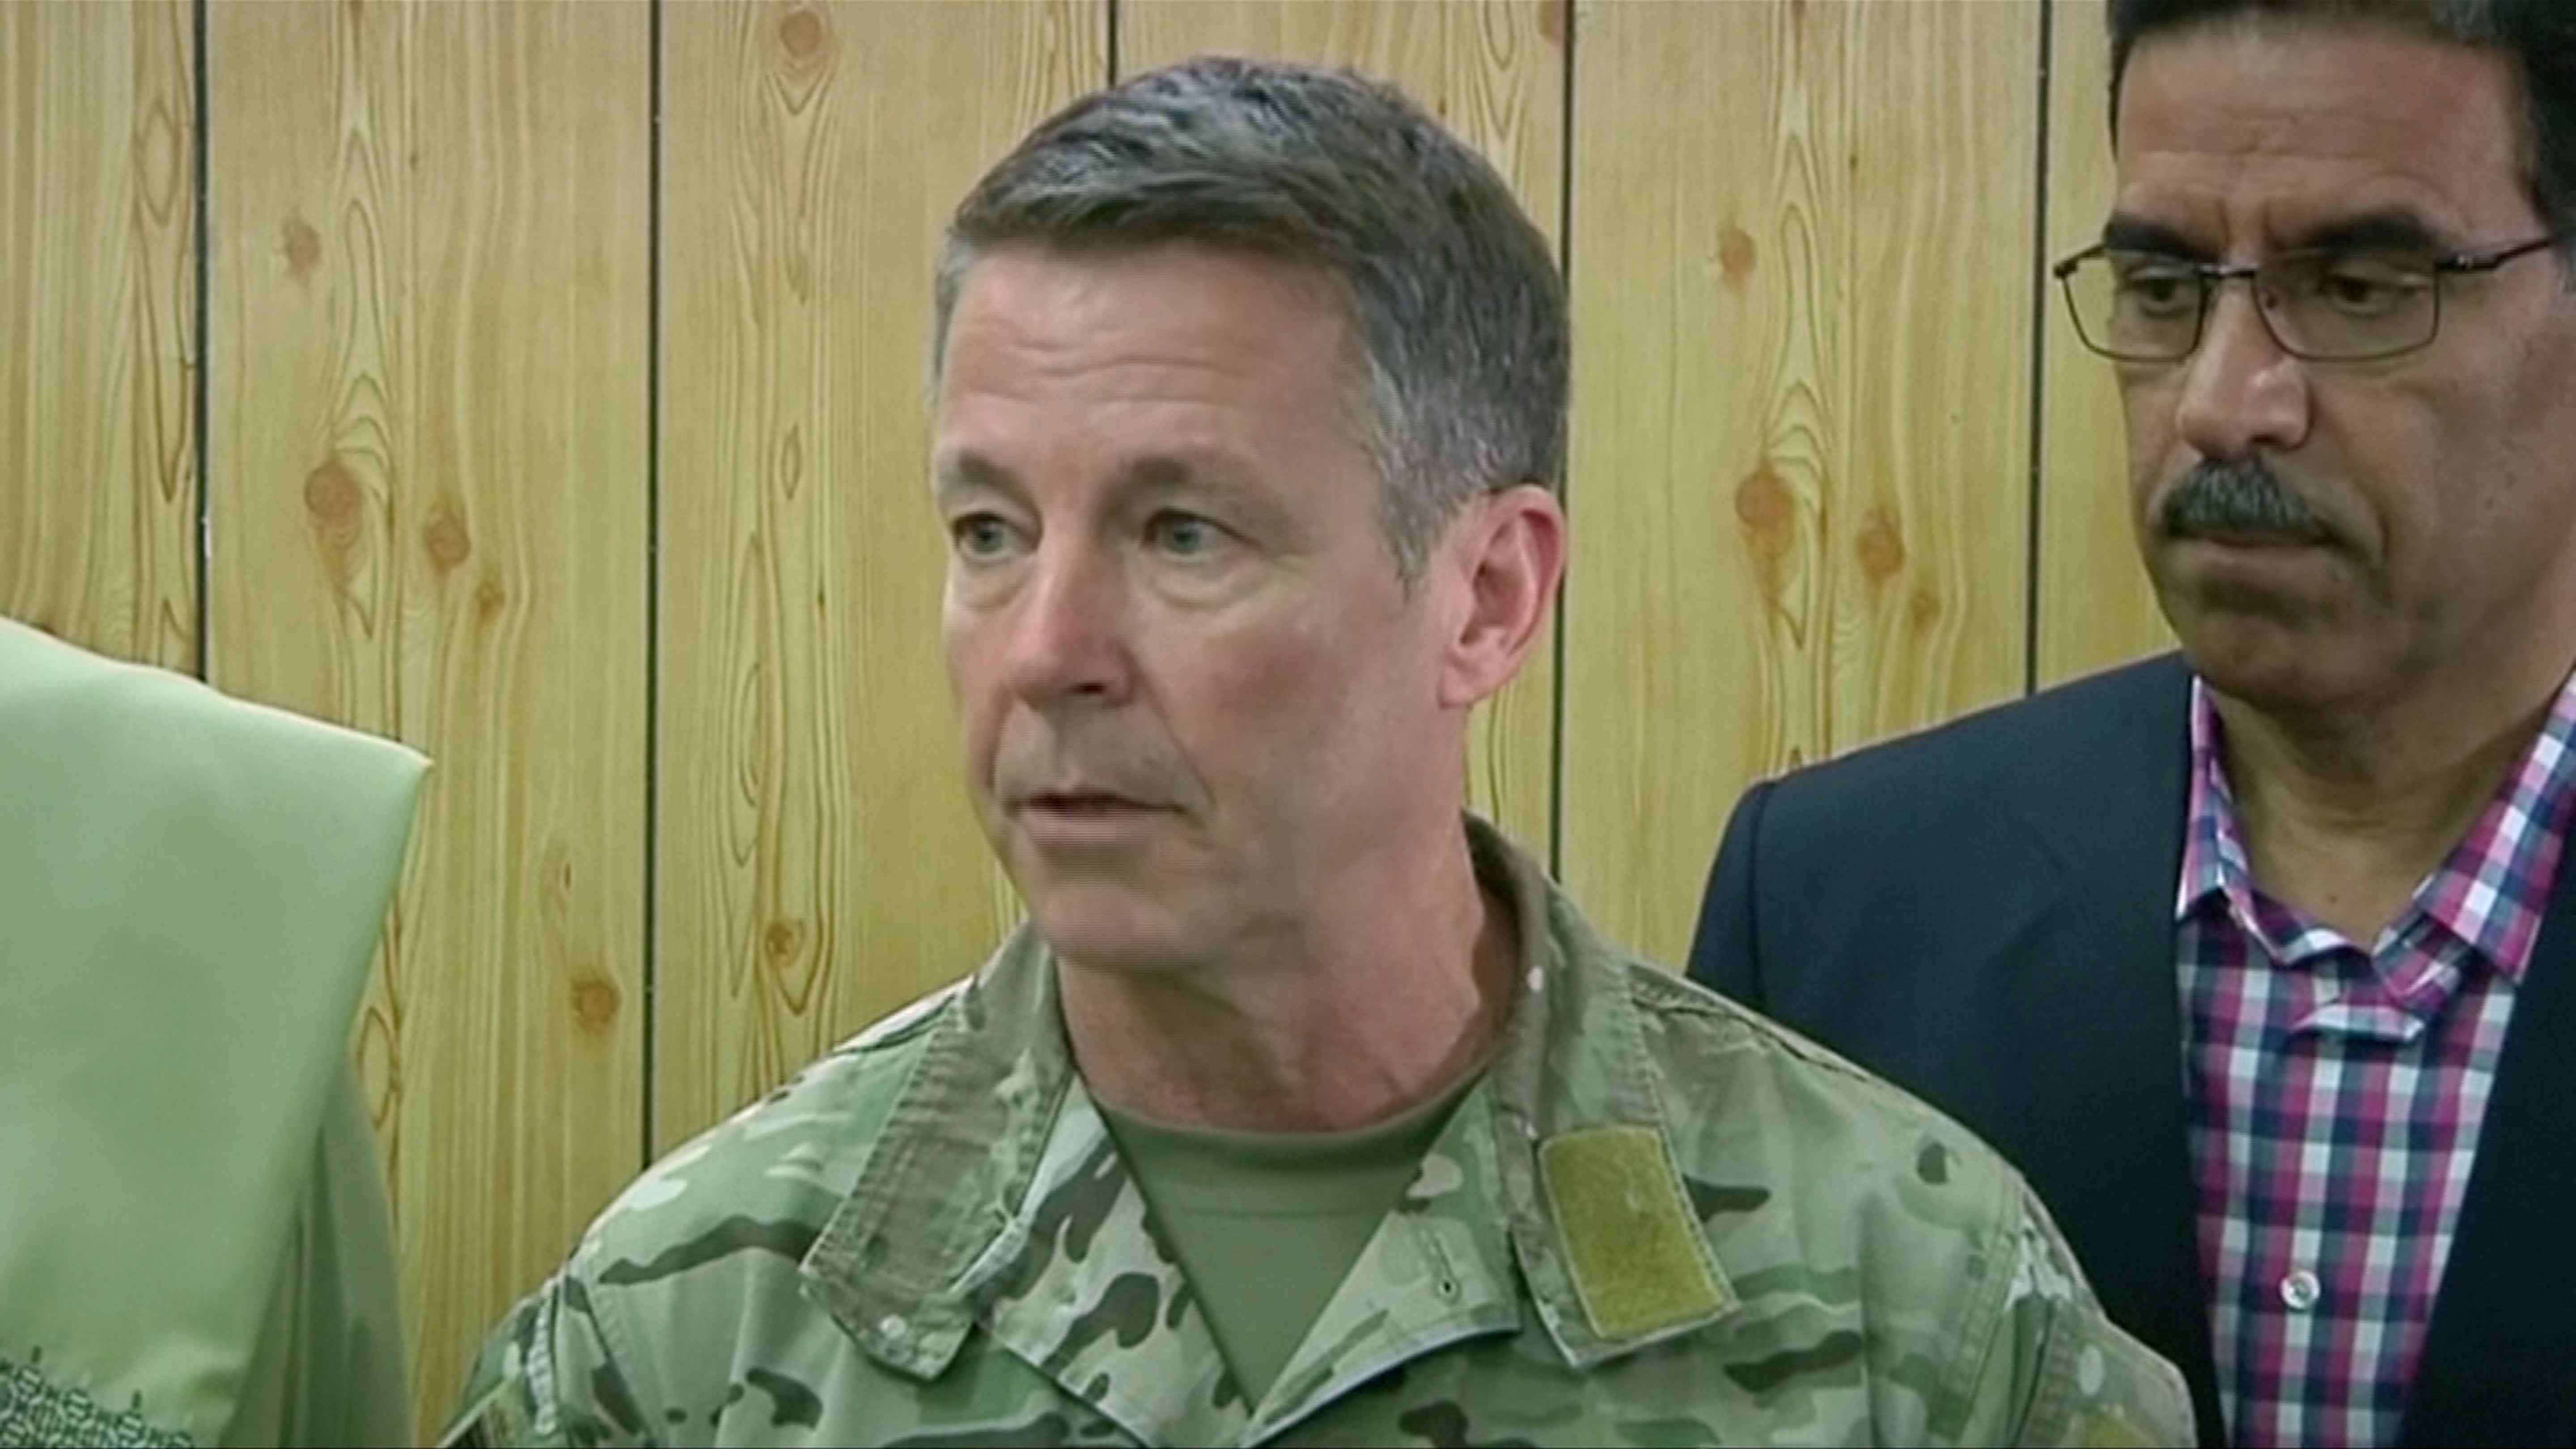 Commander of NATO forces in Afghanistan U.S. General Scott Miller attends a meeting in the Kandahar Governor's Compaund in Kandahar, Afghanistan, Oct. 18, 2018.